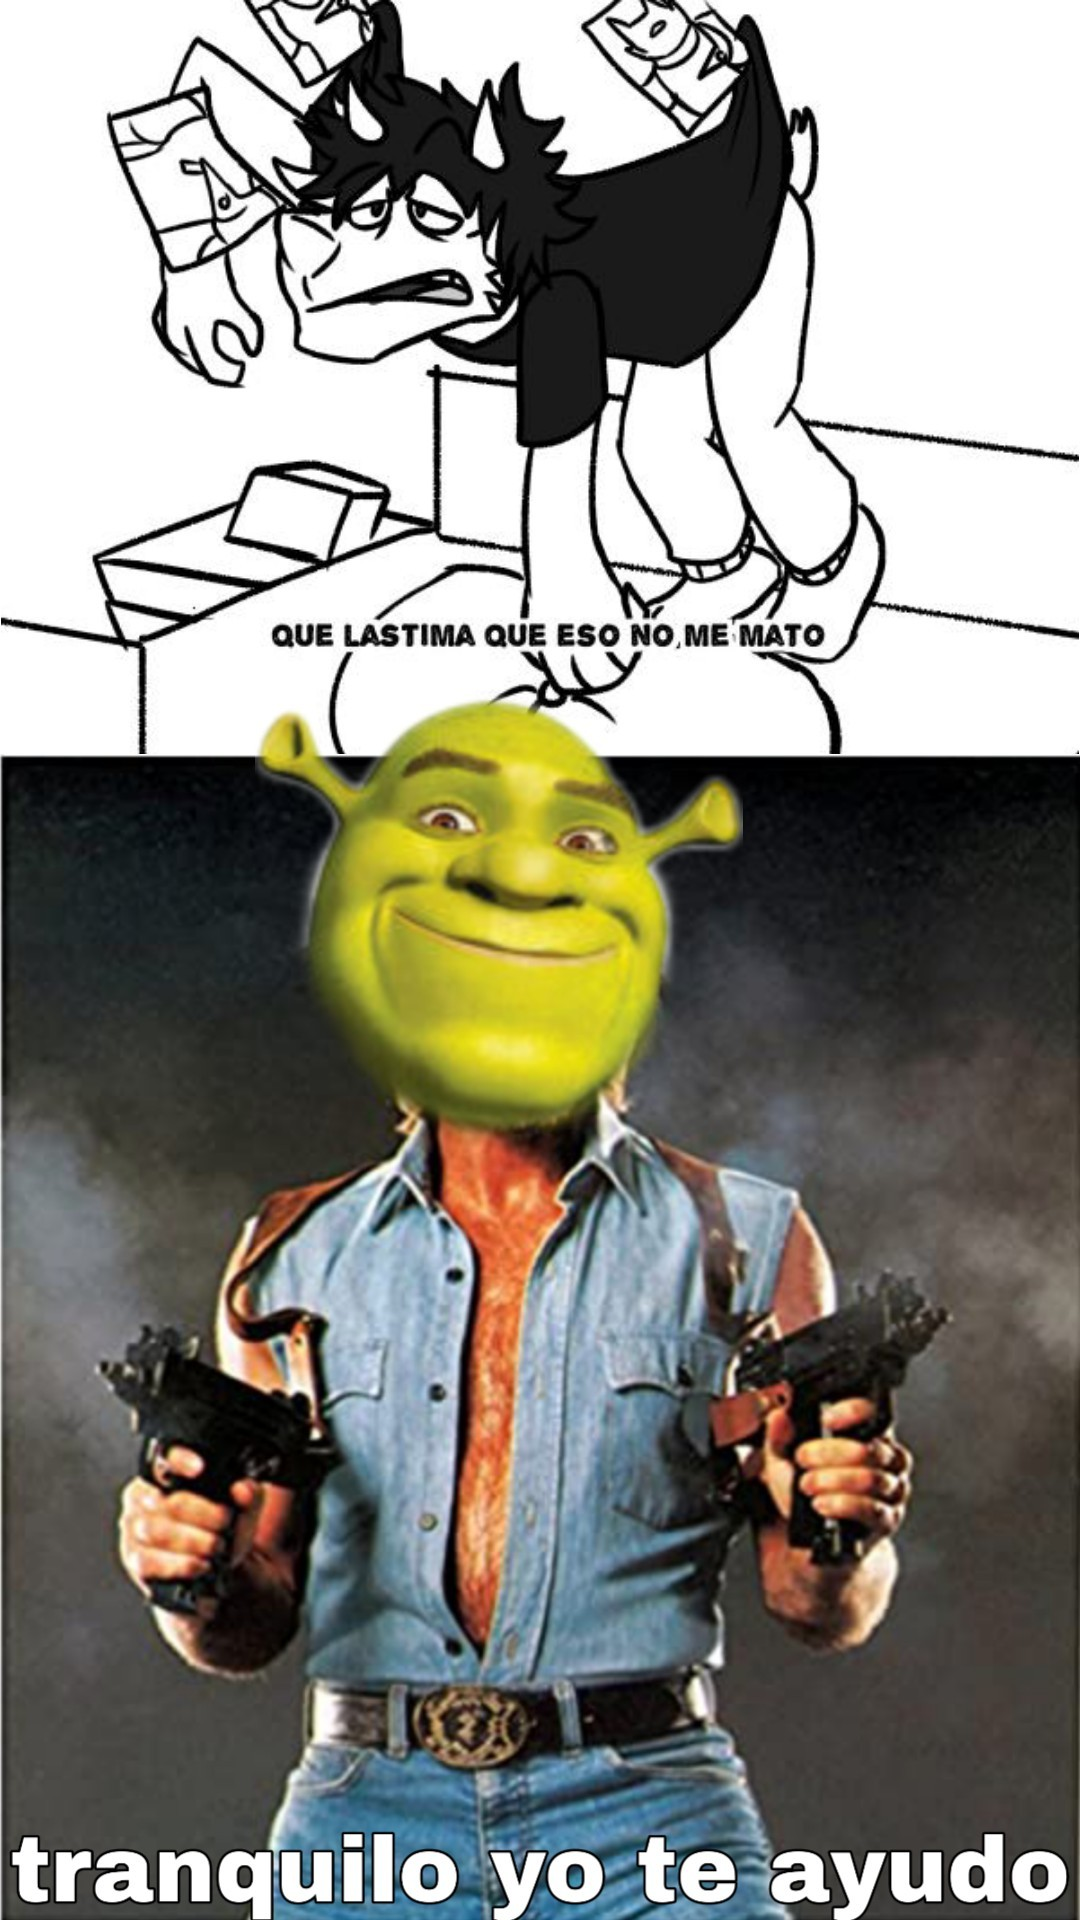 Eso shrek:allthethings: - meme